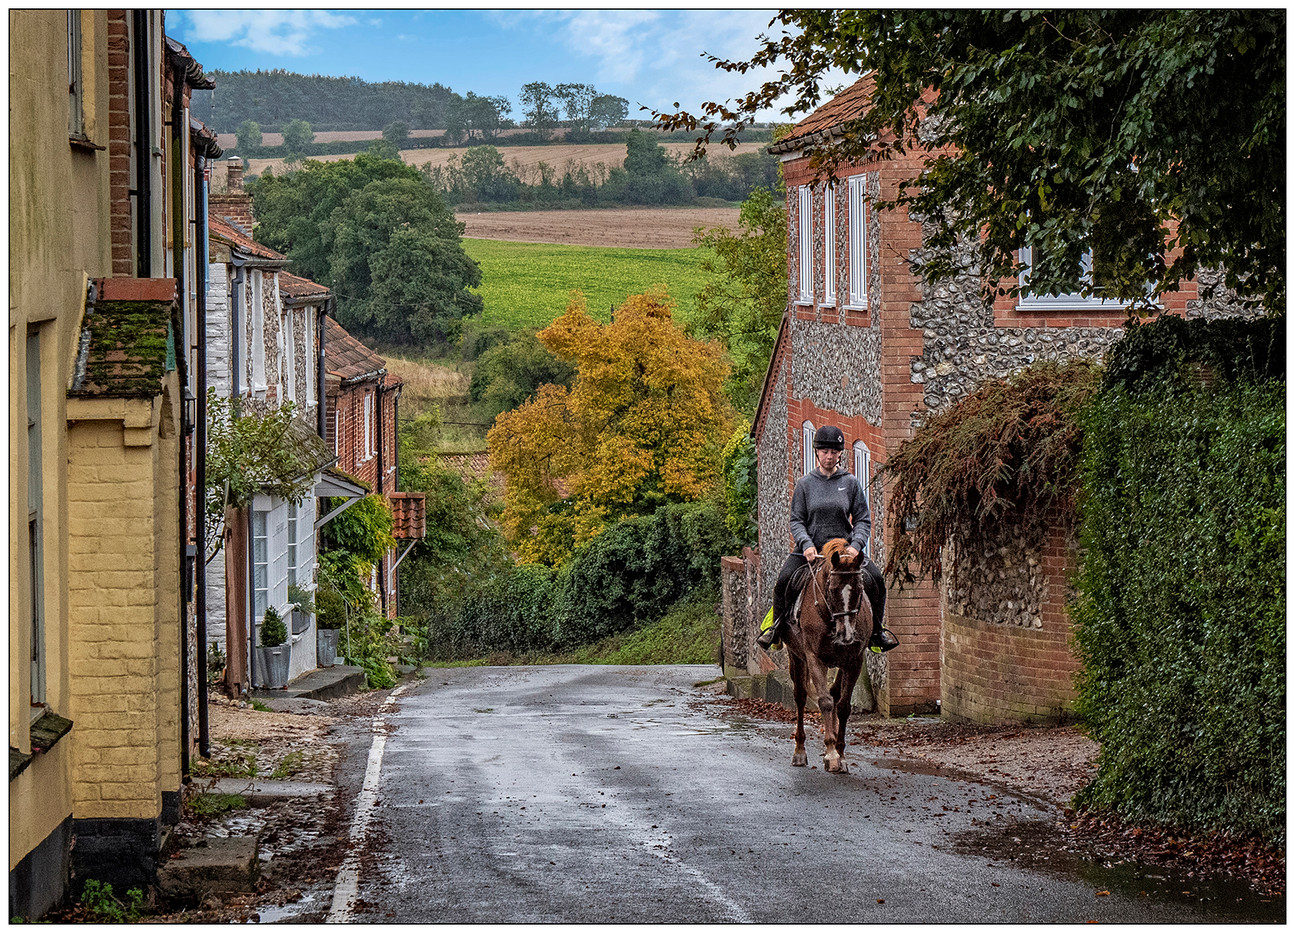 19 A TROT UP BAILEY STREET CASTLE ACRE by Graham Bunyan